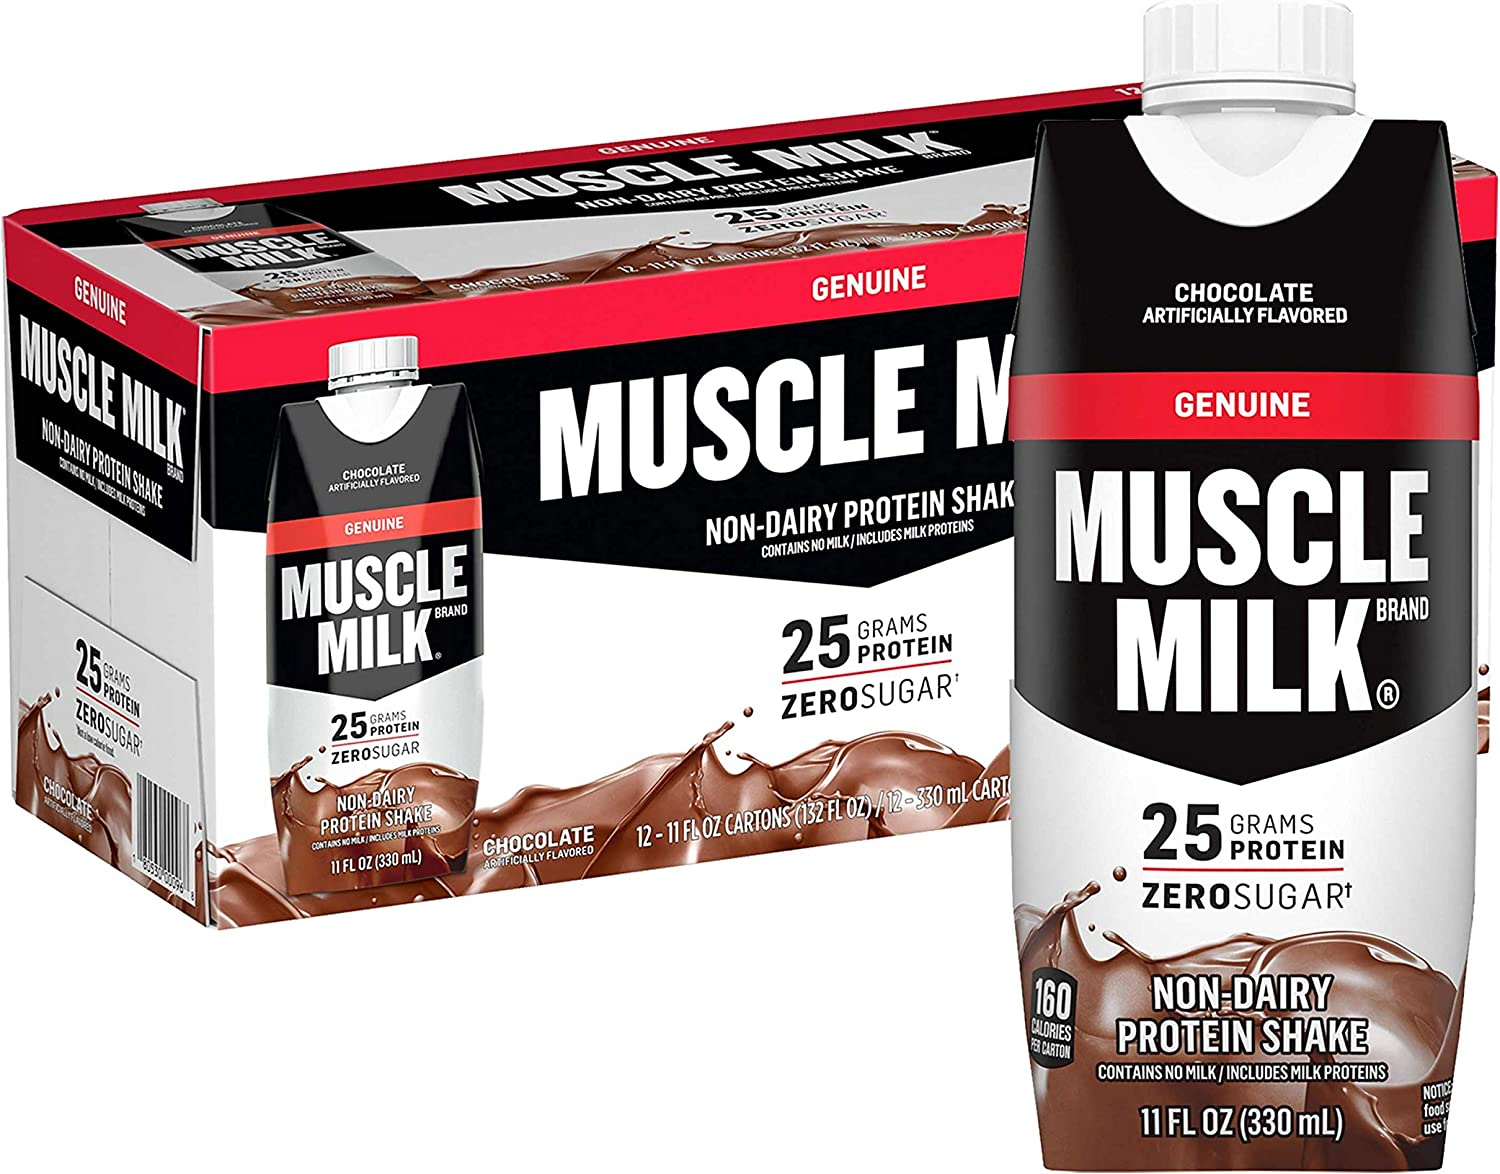 Muscle Milk Genuine Protein Shake, Chocolate, 25g Protein, 11 Fl Oz, 12 Pack: Health & Personal Care